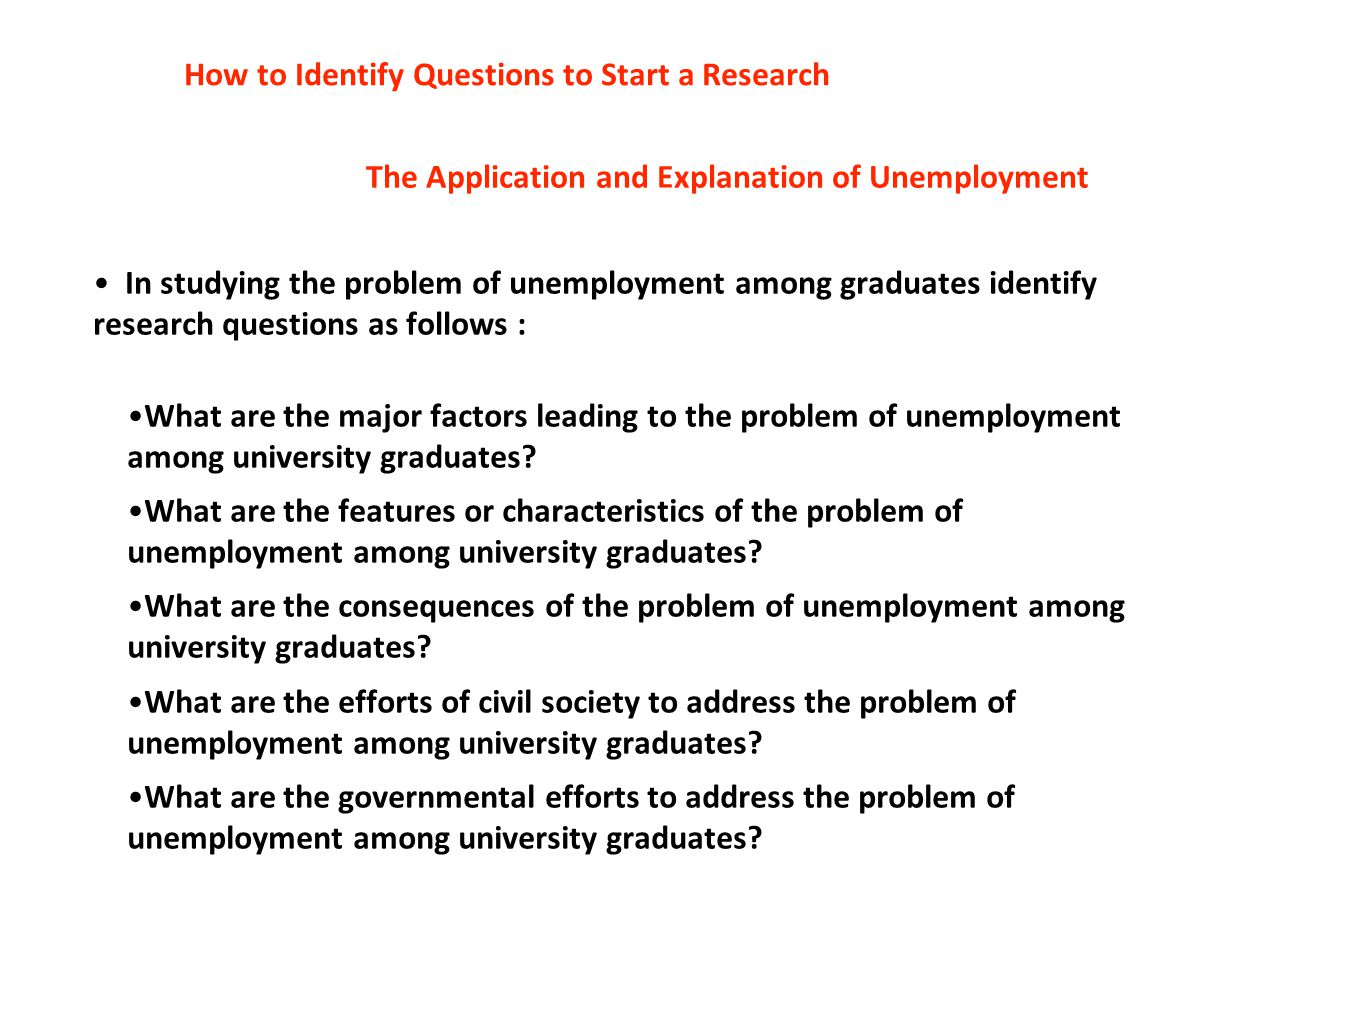 The Application and Explanation of Unemployment